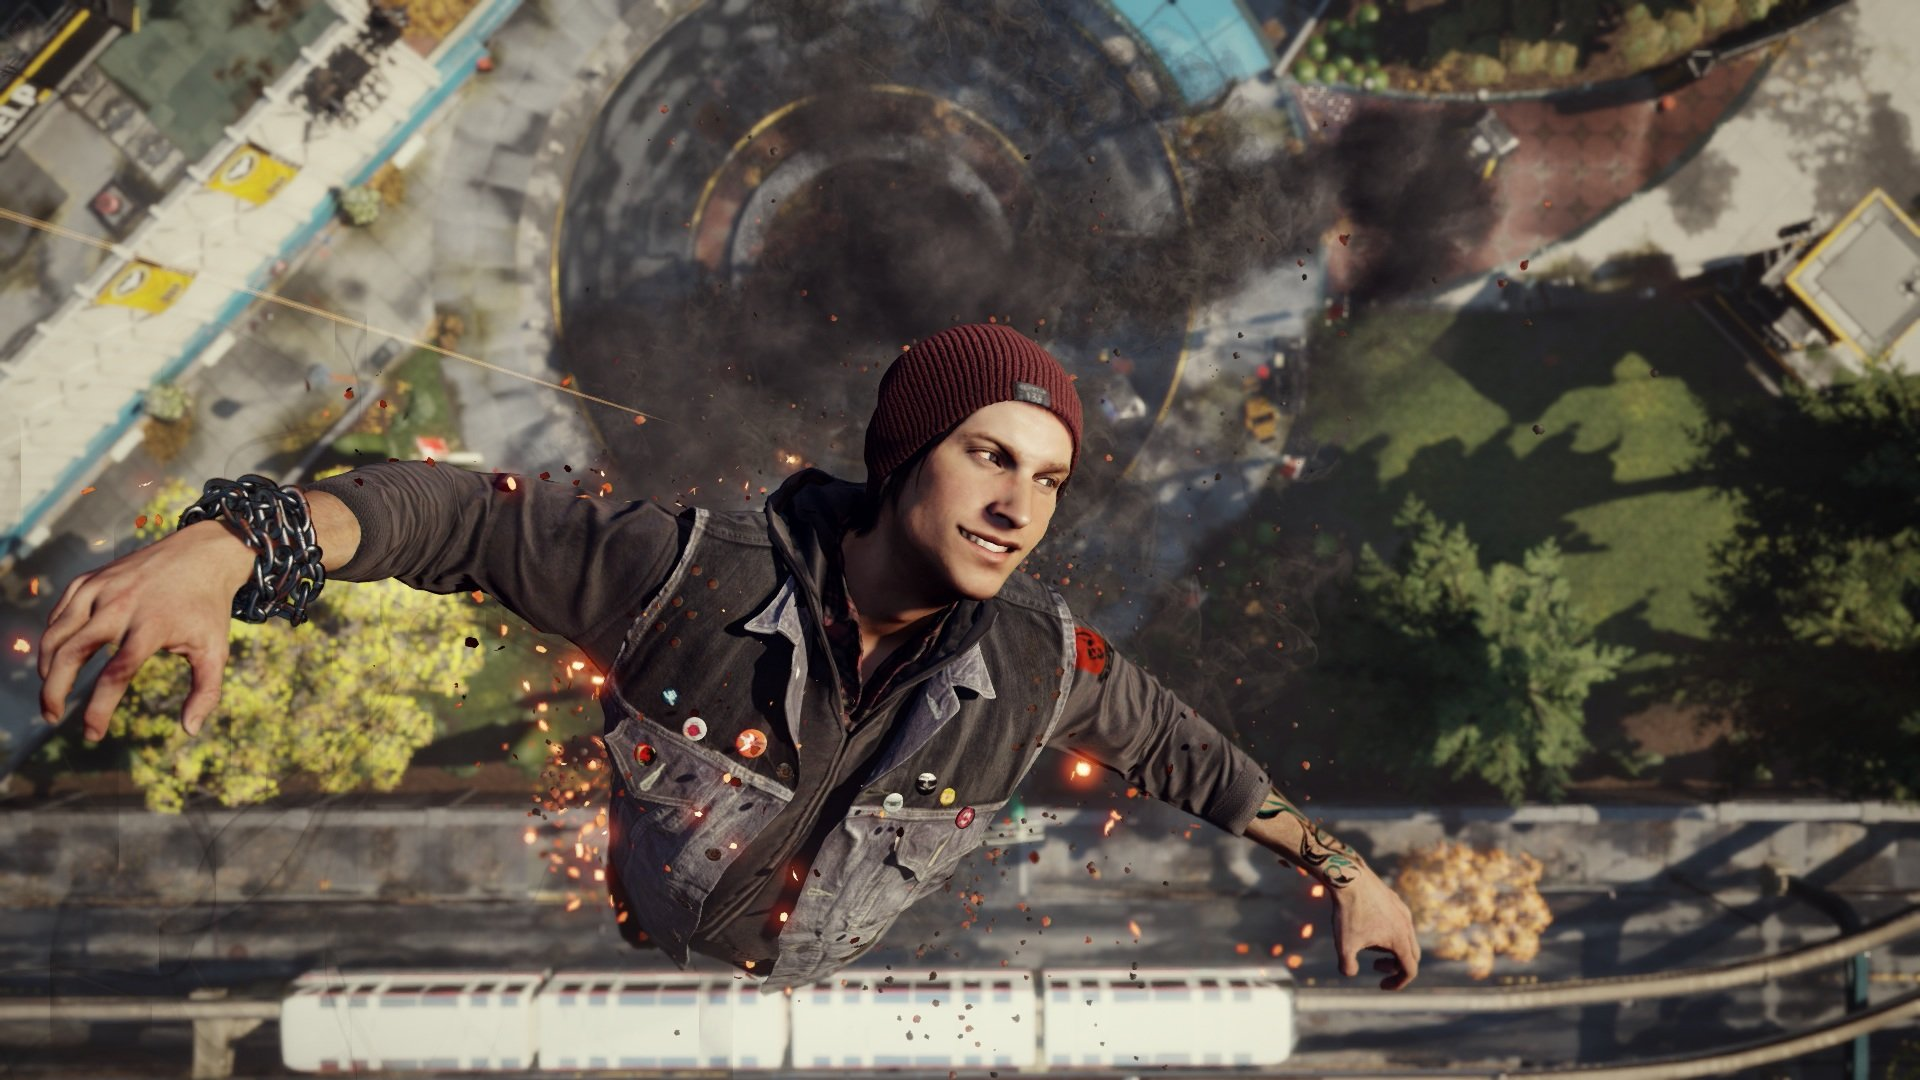 Директор по разработке inFAMOUS: Second Son,  Chris Zimmerman раскрыл некоторую информацию, касательно игры, которая ... - Изображение 1